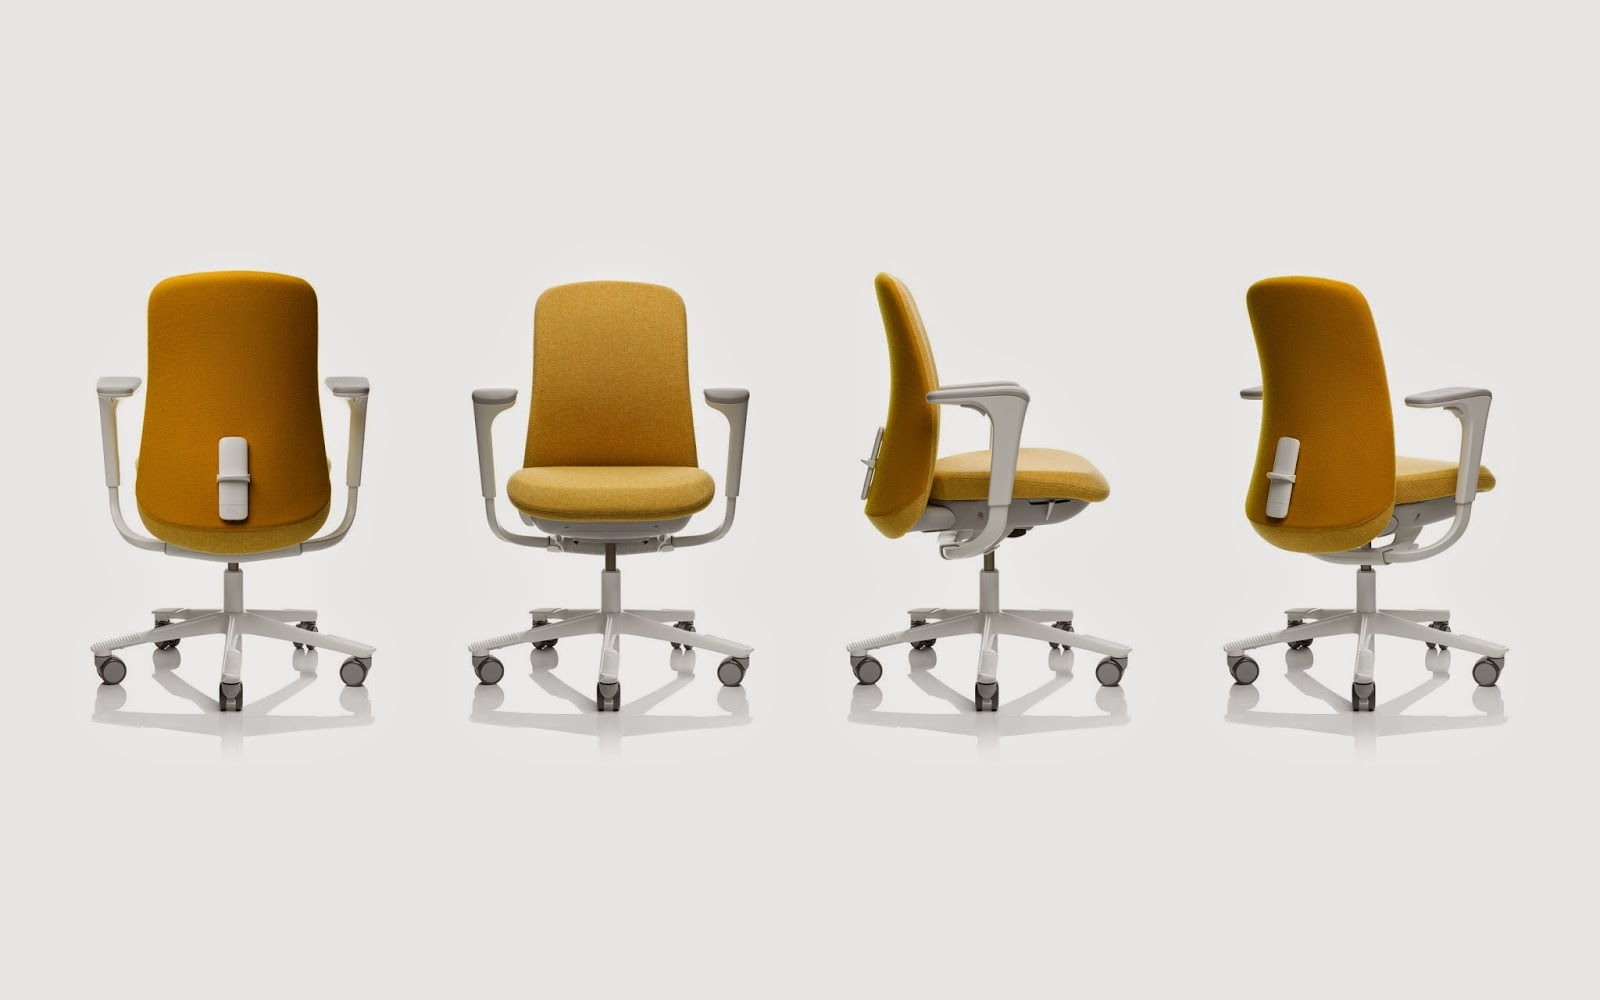 scandinavian office chair. scandinavian business seating is dedicated to making welldesigned comfortable office chairs the hg sofi chair no exception this line of comes